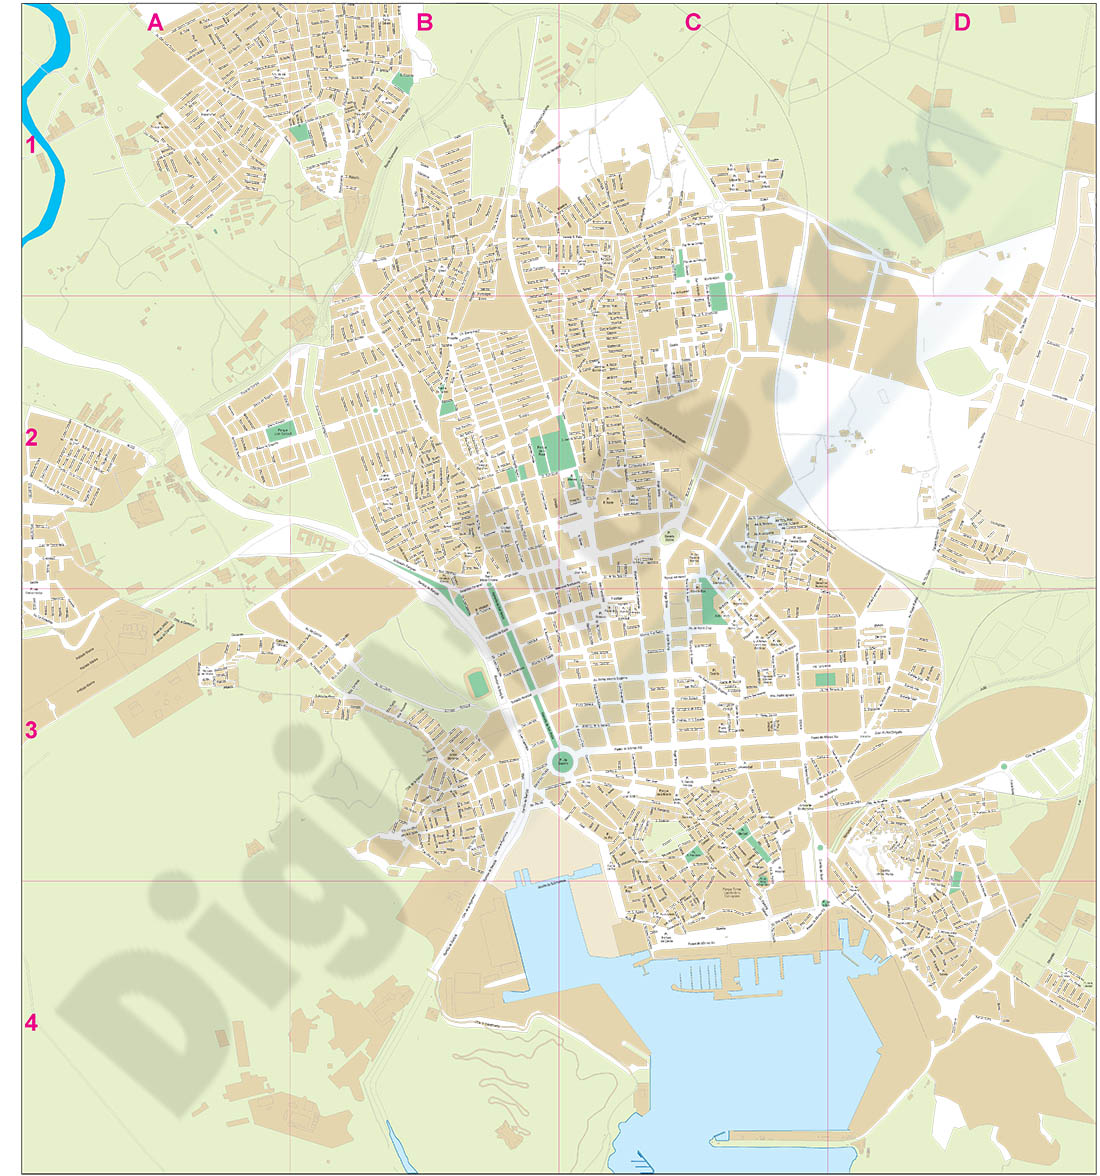 Cartagena (Murcia) - city map